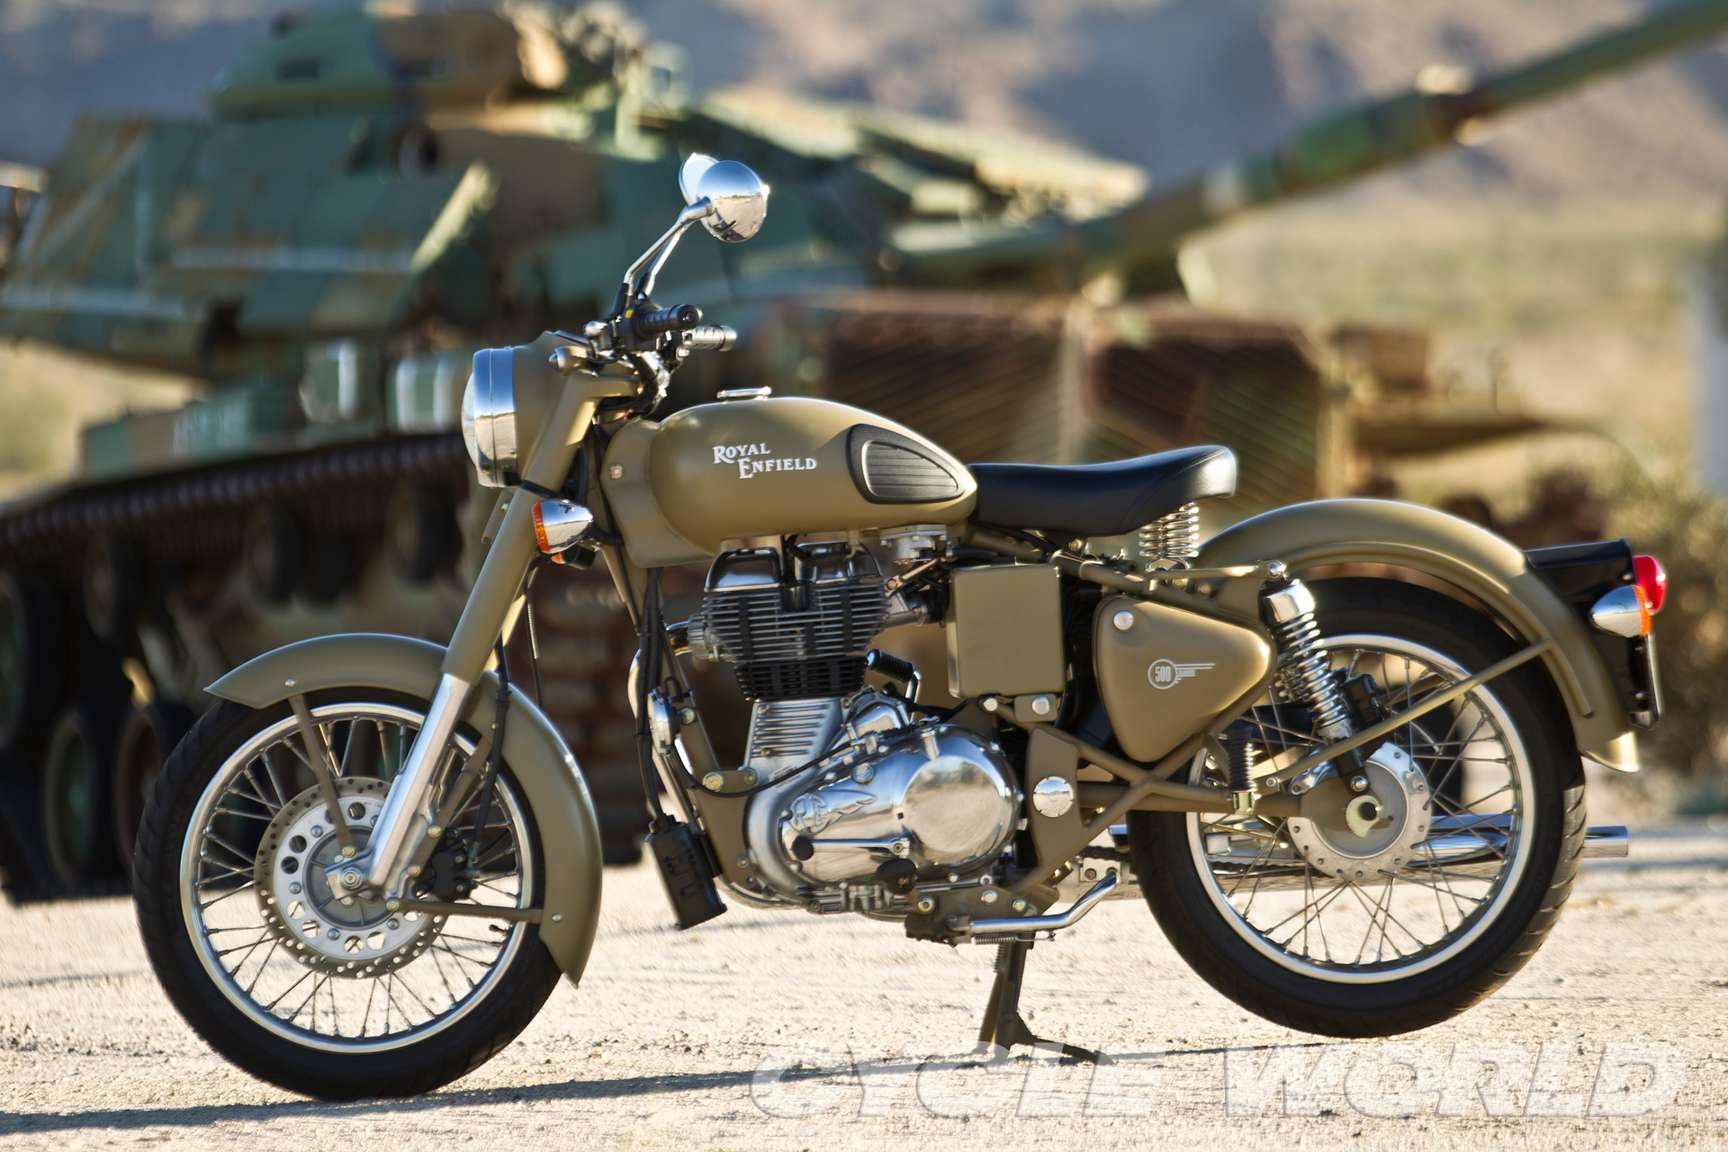 Royal Enfield Classic 500 #8688909